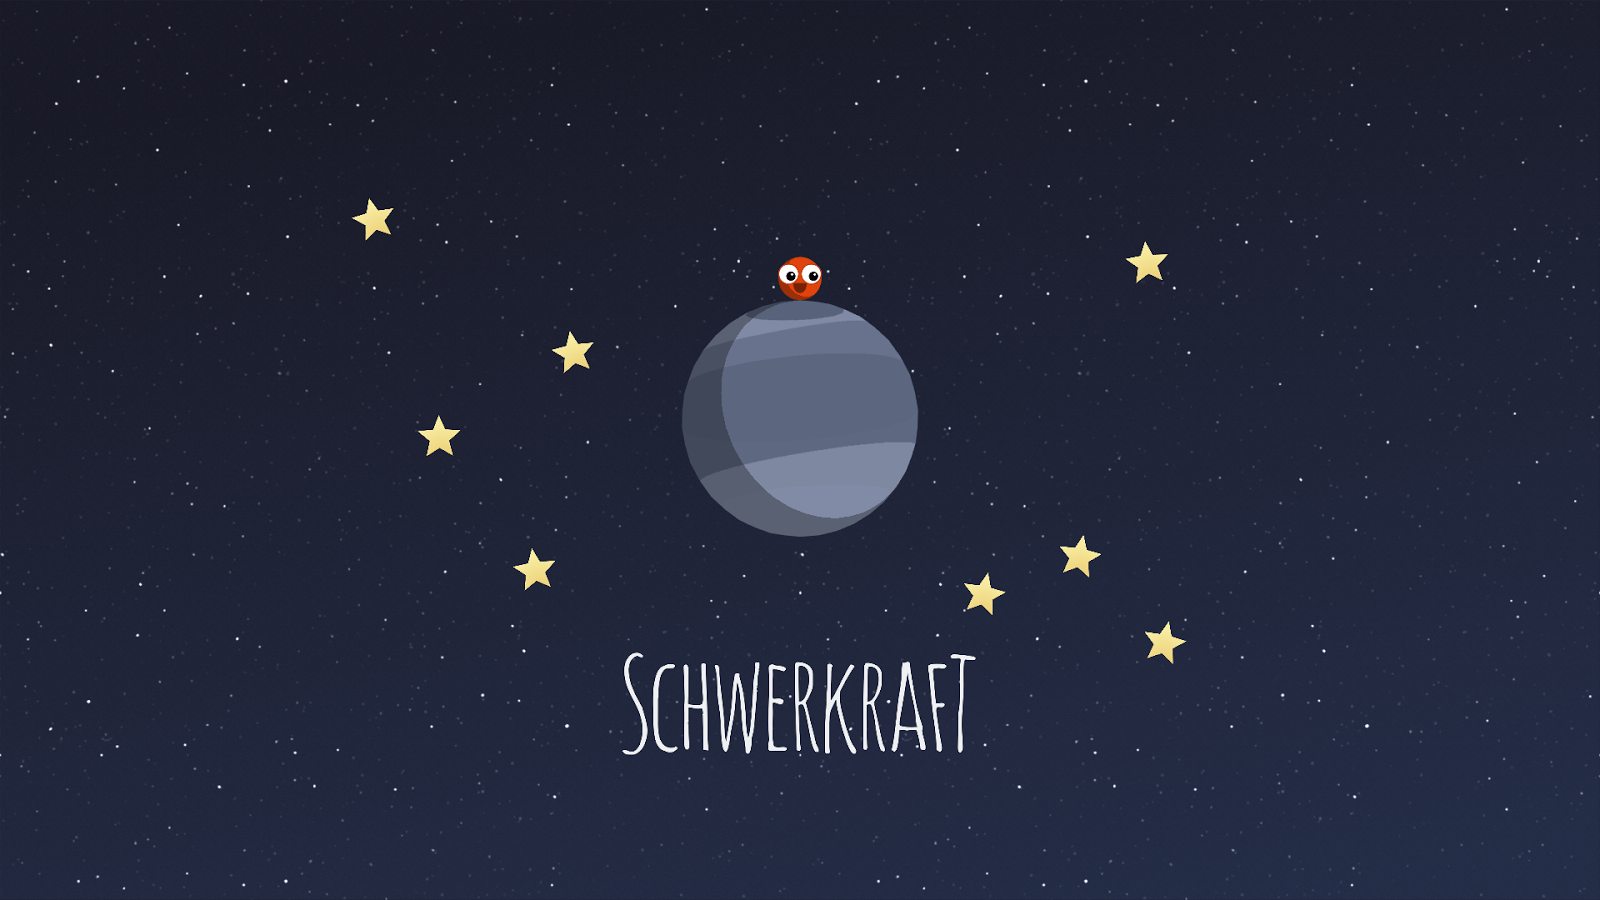 Schwerkraft- screenshot